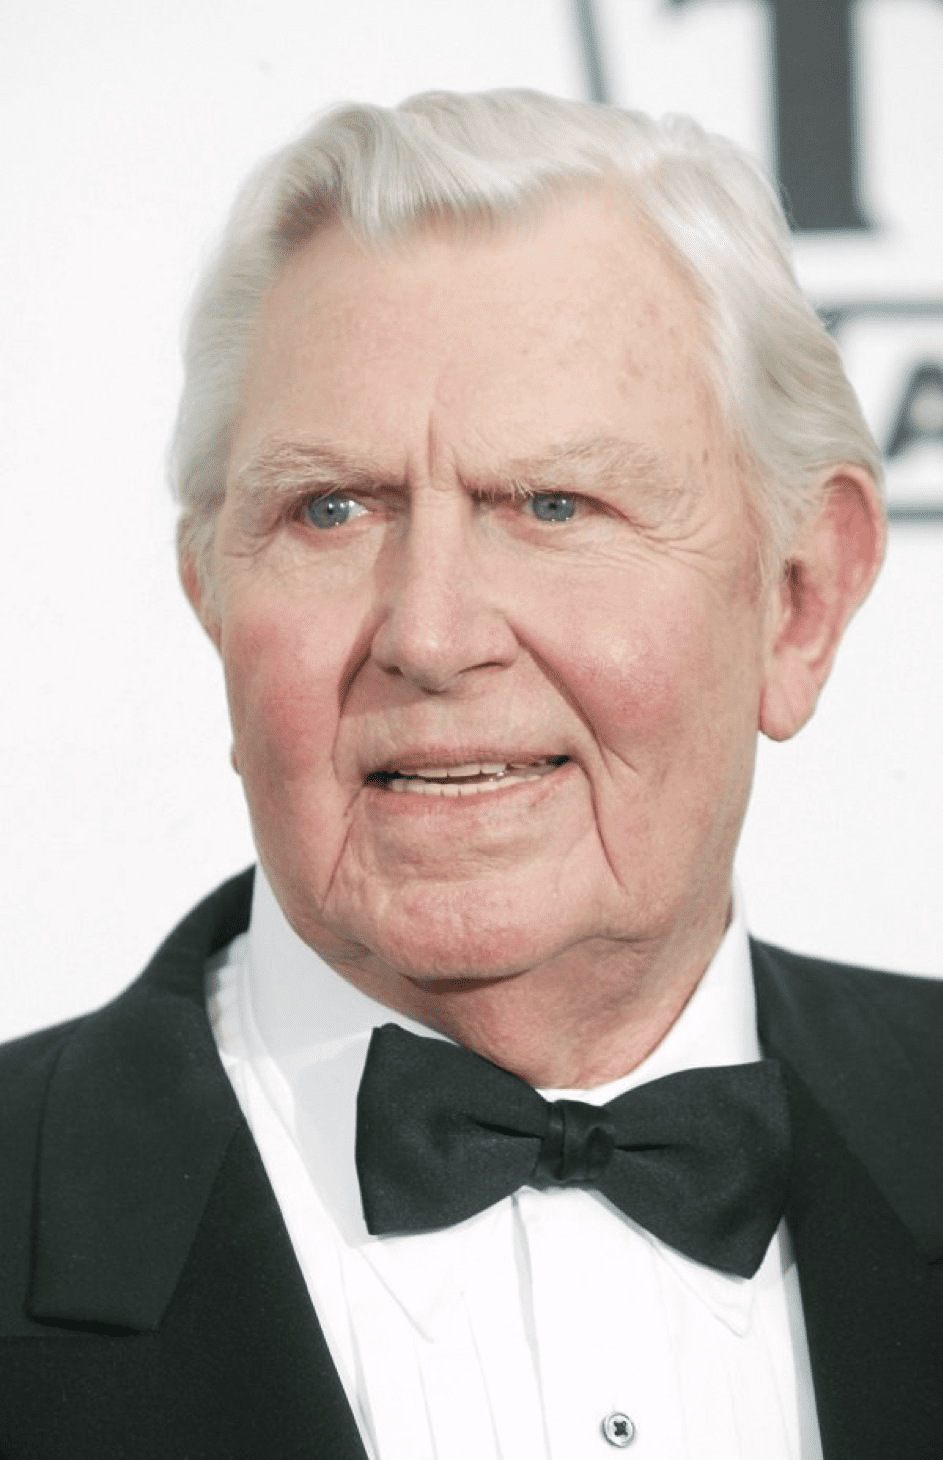 Andy Griffith am 7.3. 2004 am Hollywood Palladium. | Quelle: Getty Images